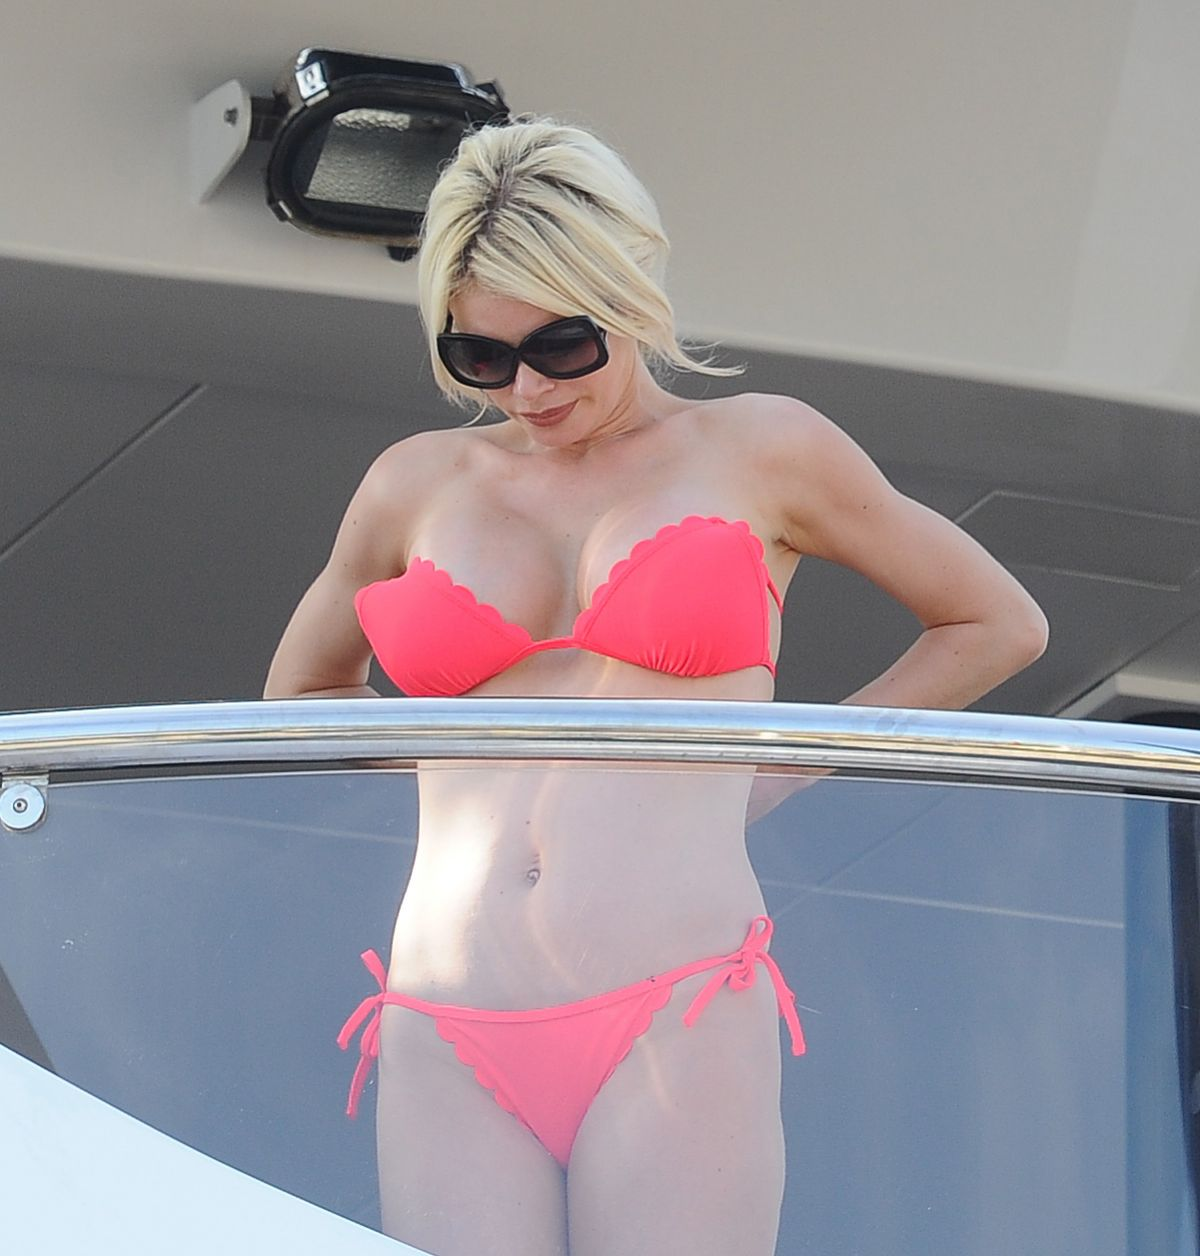 CHLOE SIMS in Bikini at a Yacht 05/18/2016